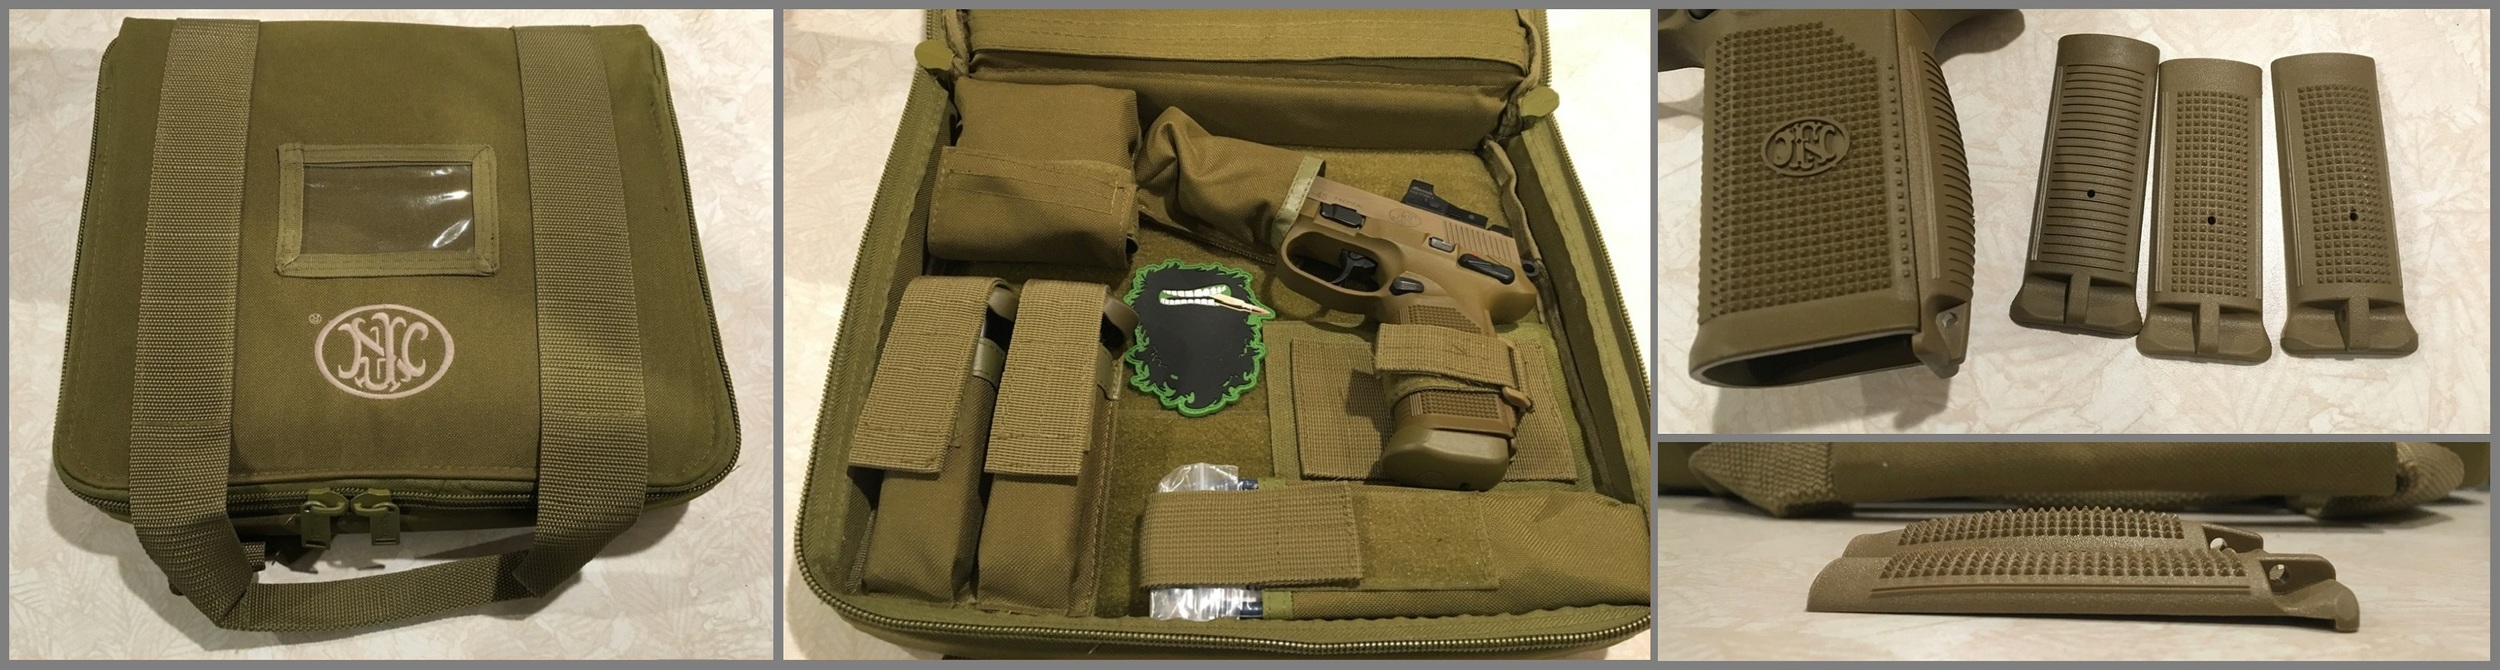 The FNX comes standard with 4 magazines, differing backstrap sizes and textures and a case to carry it all.